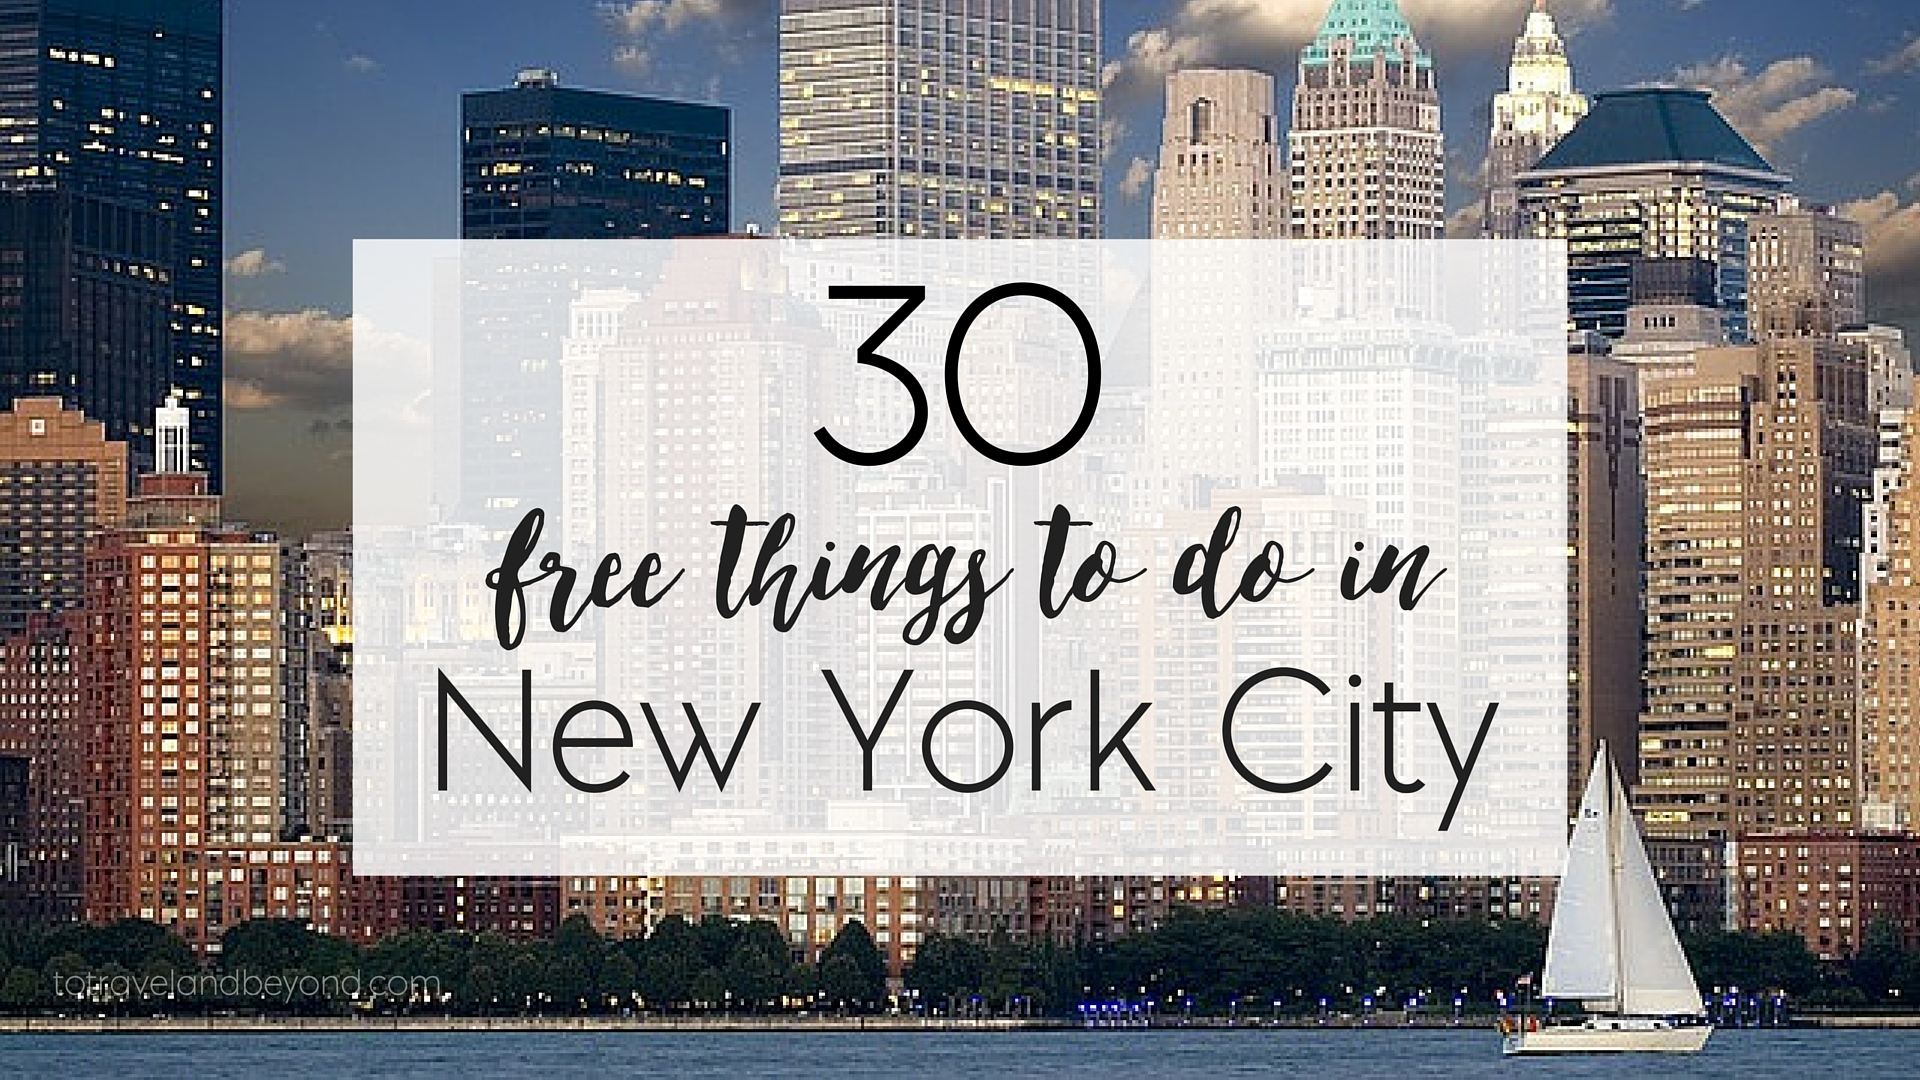 Time out new york new york events activities things to do for Things to do in new yok